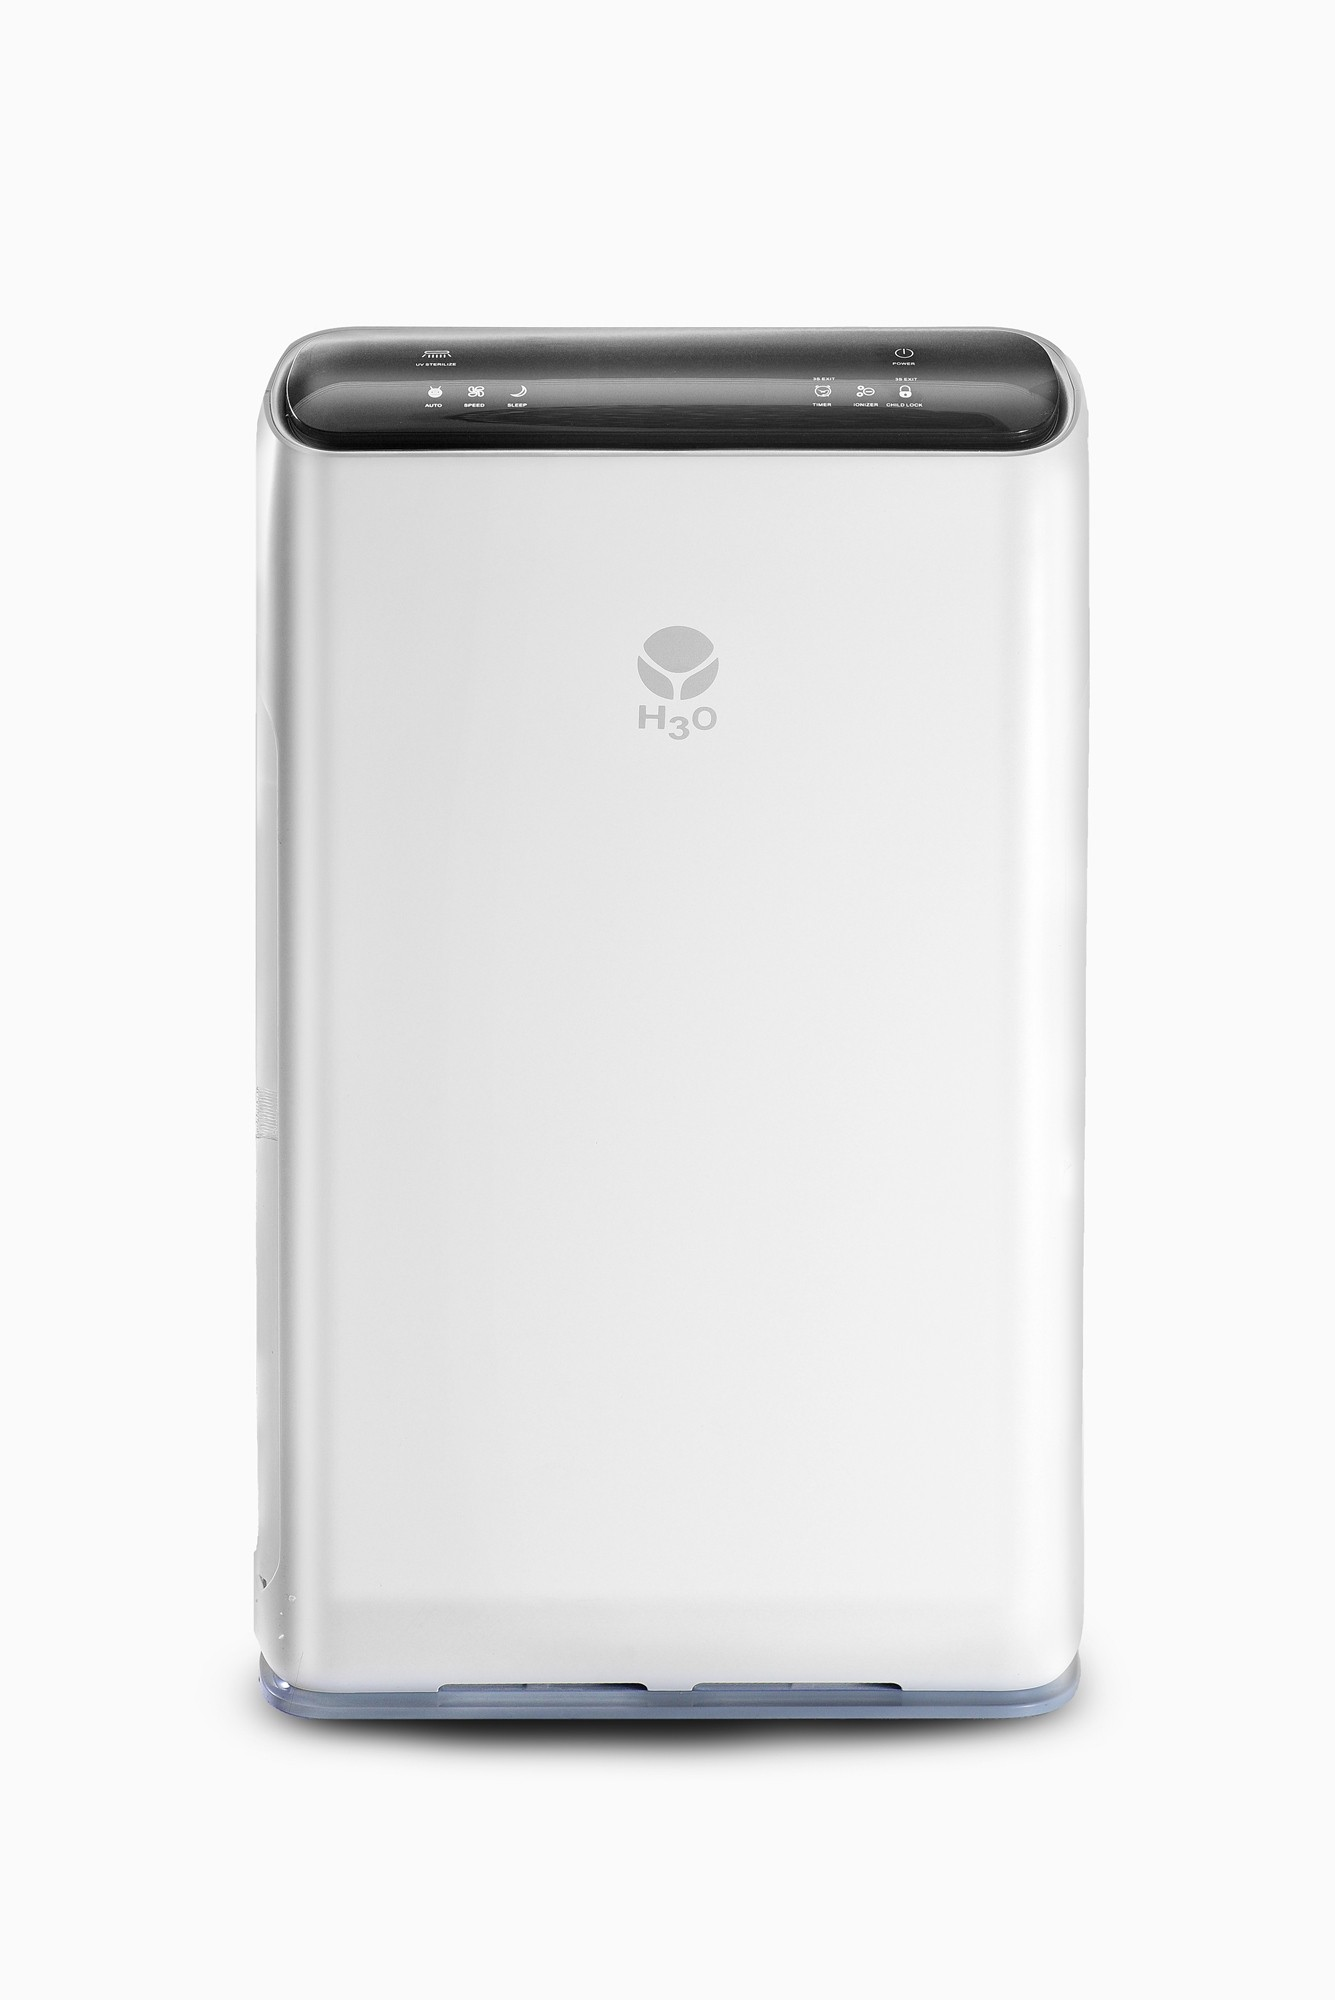 View H3O VE2 80Watt- 7 Stage Purification Portable Room Air Purifier(Black, White) Home Appliances Price Online(H3O)